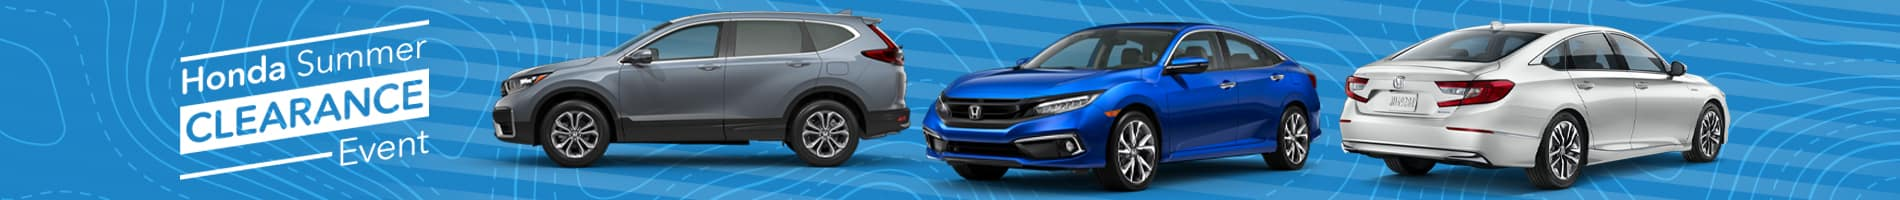 Honda Summer Clearance Sales Event in Cincinnati